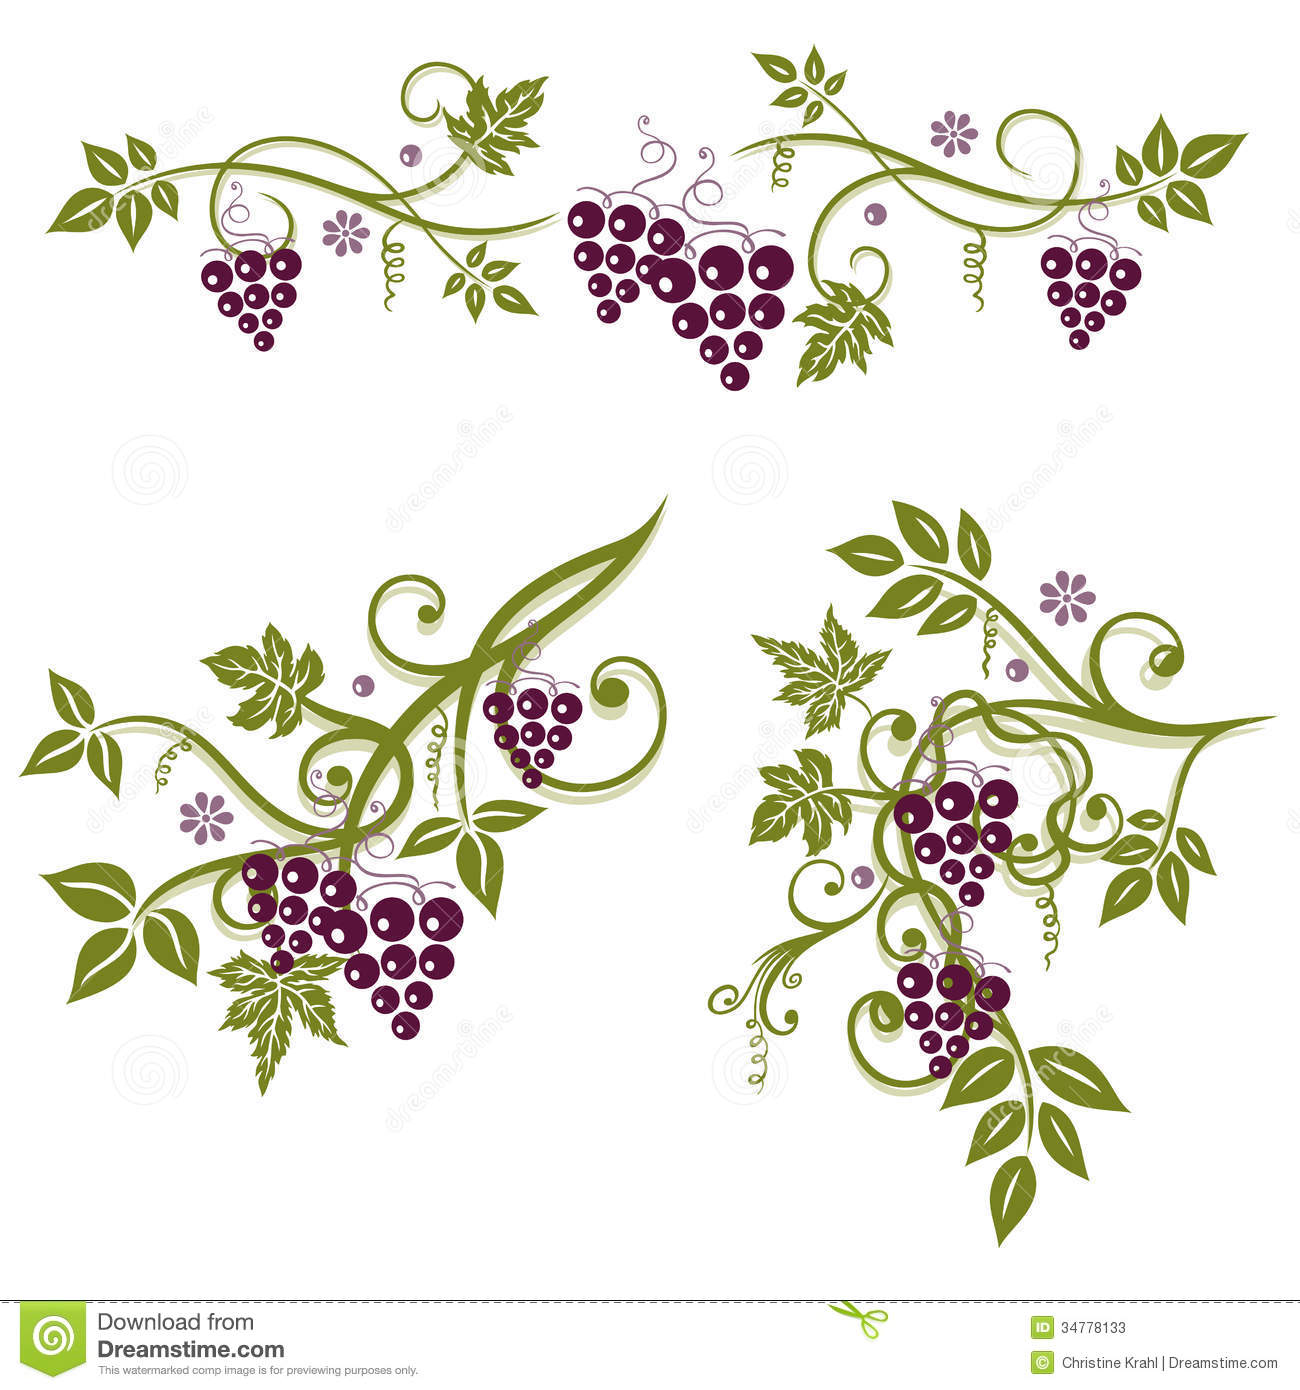 Vineyard clipart grape plant Pinterest Google La leaves vine